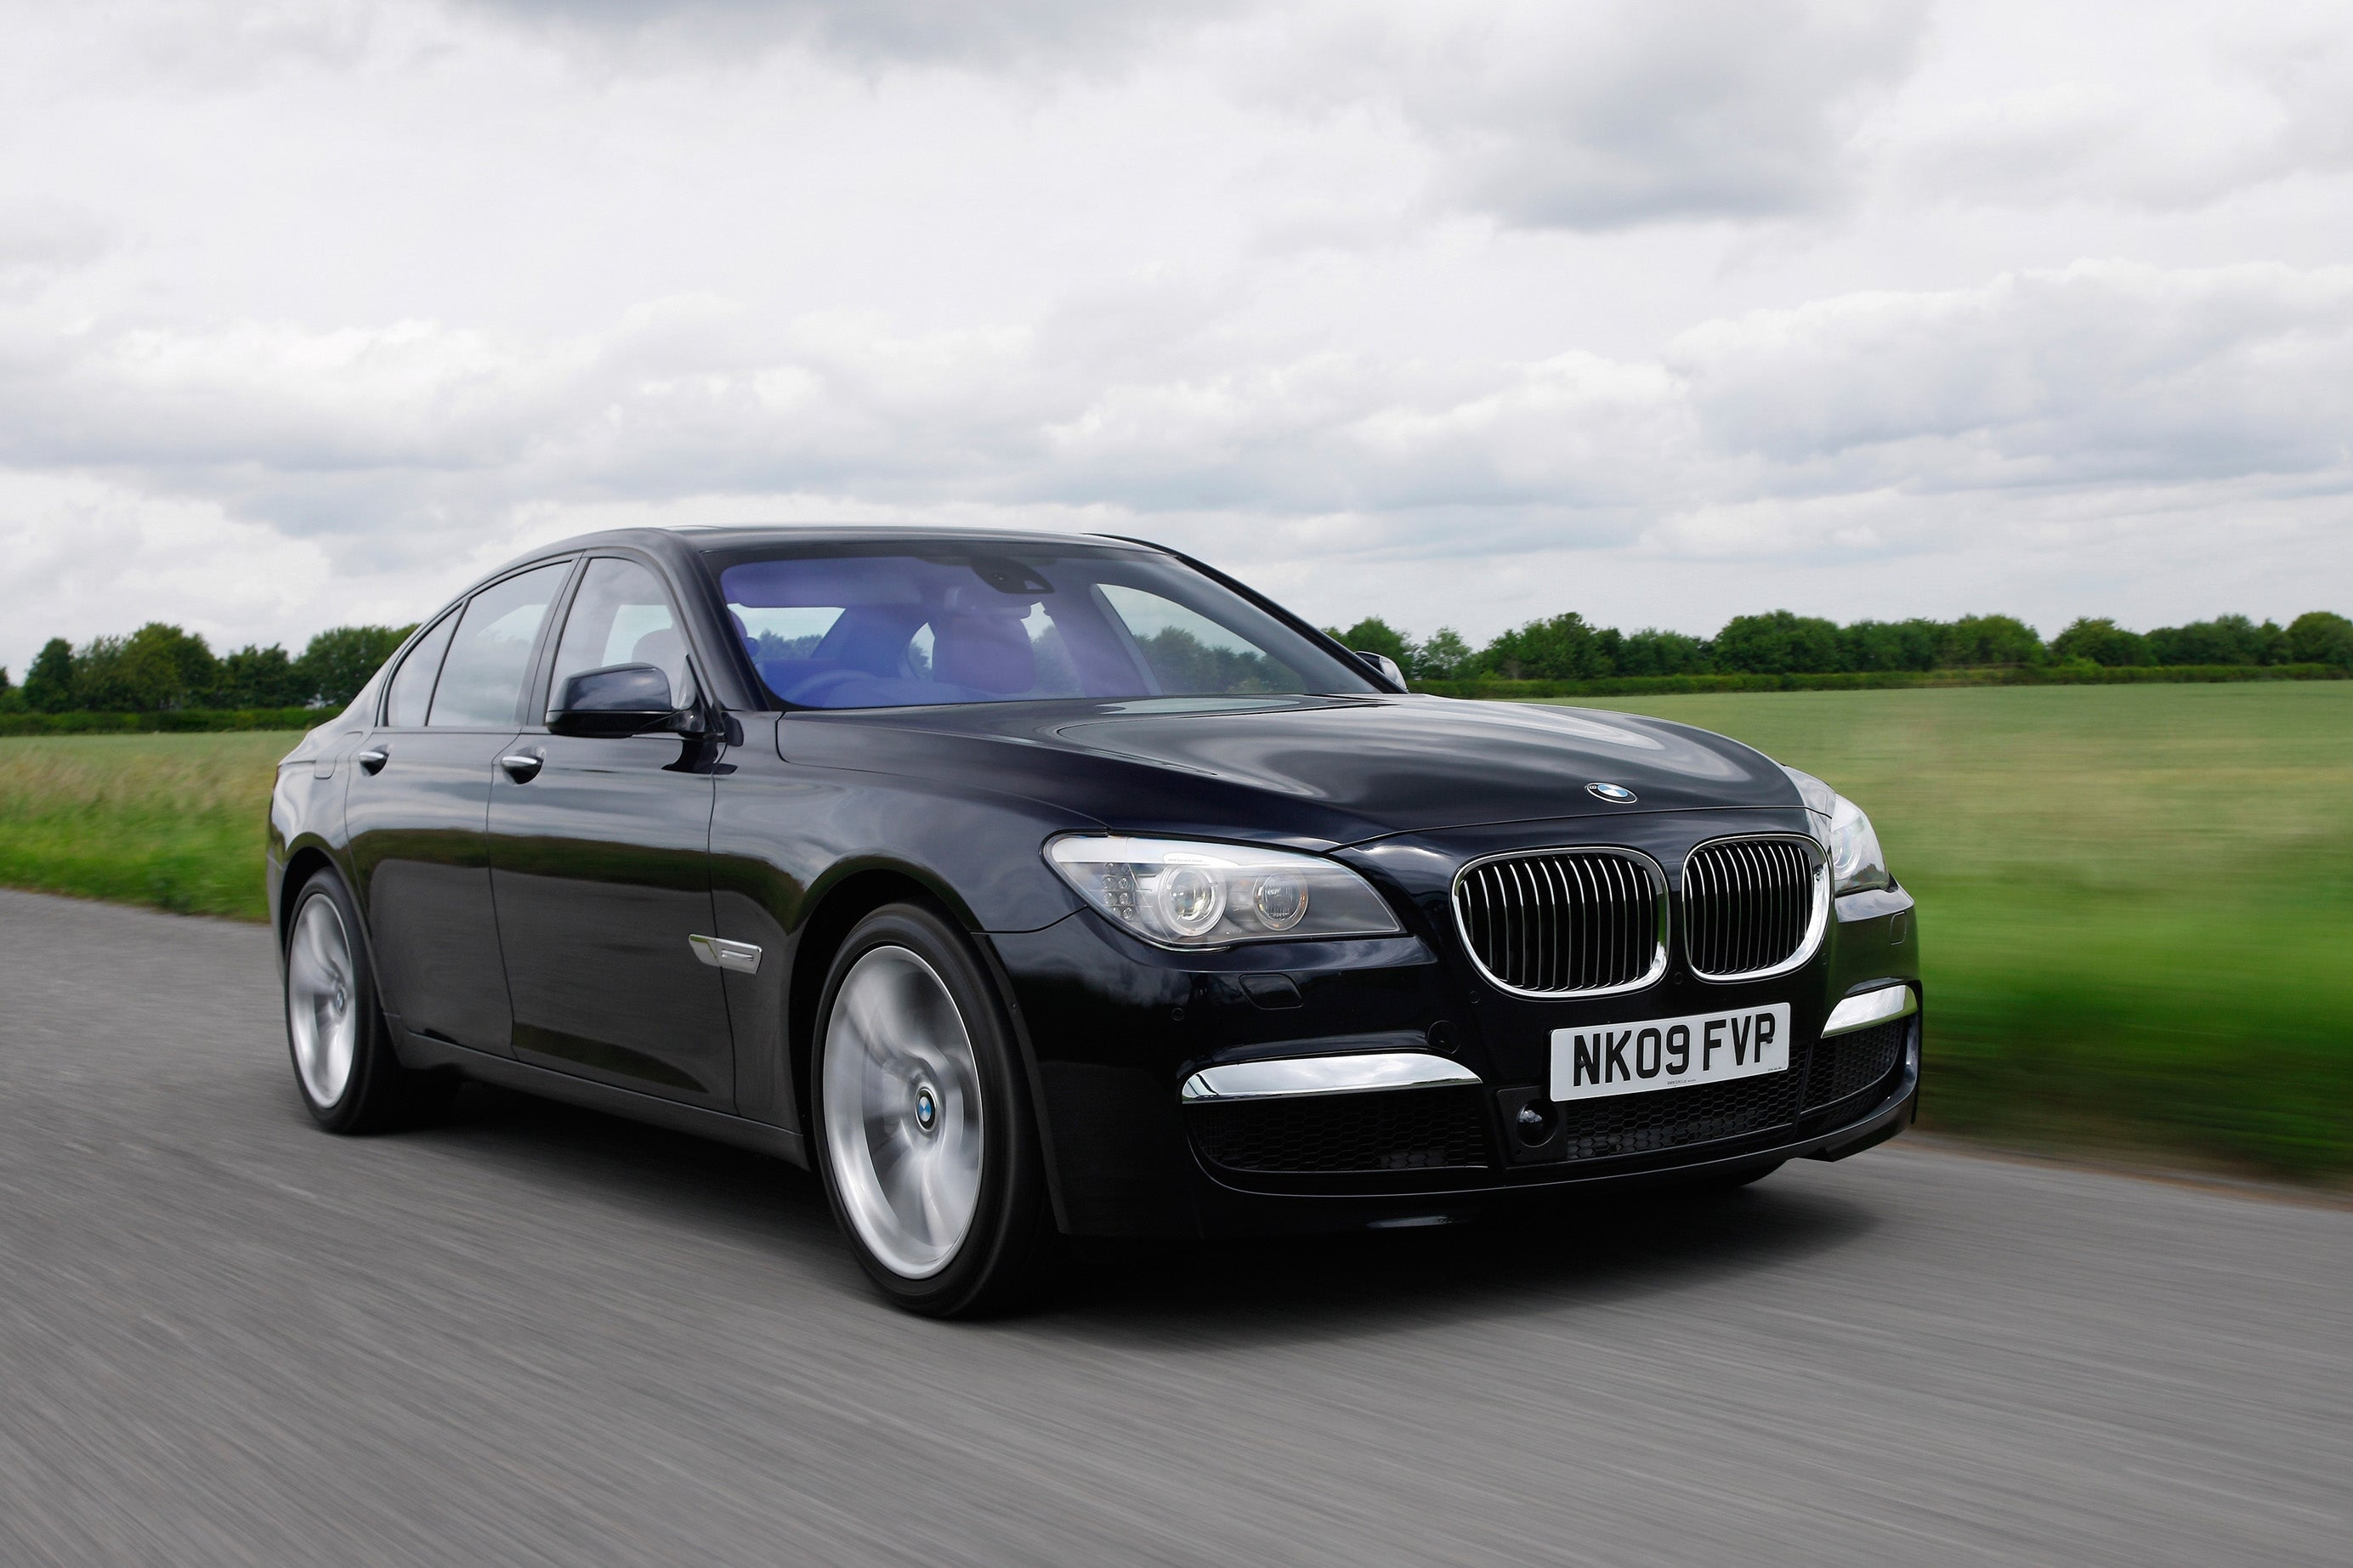 BMW 7 Series on road